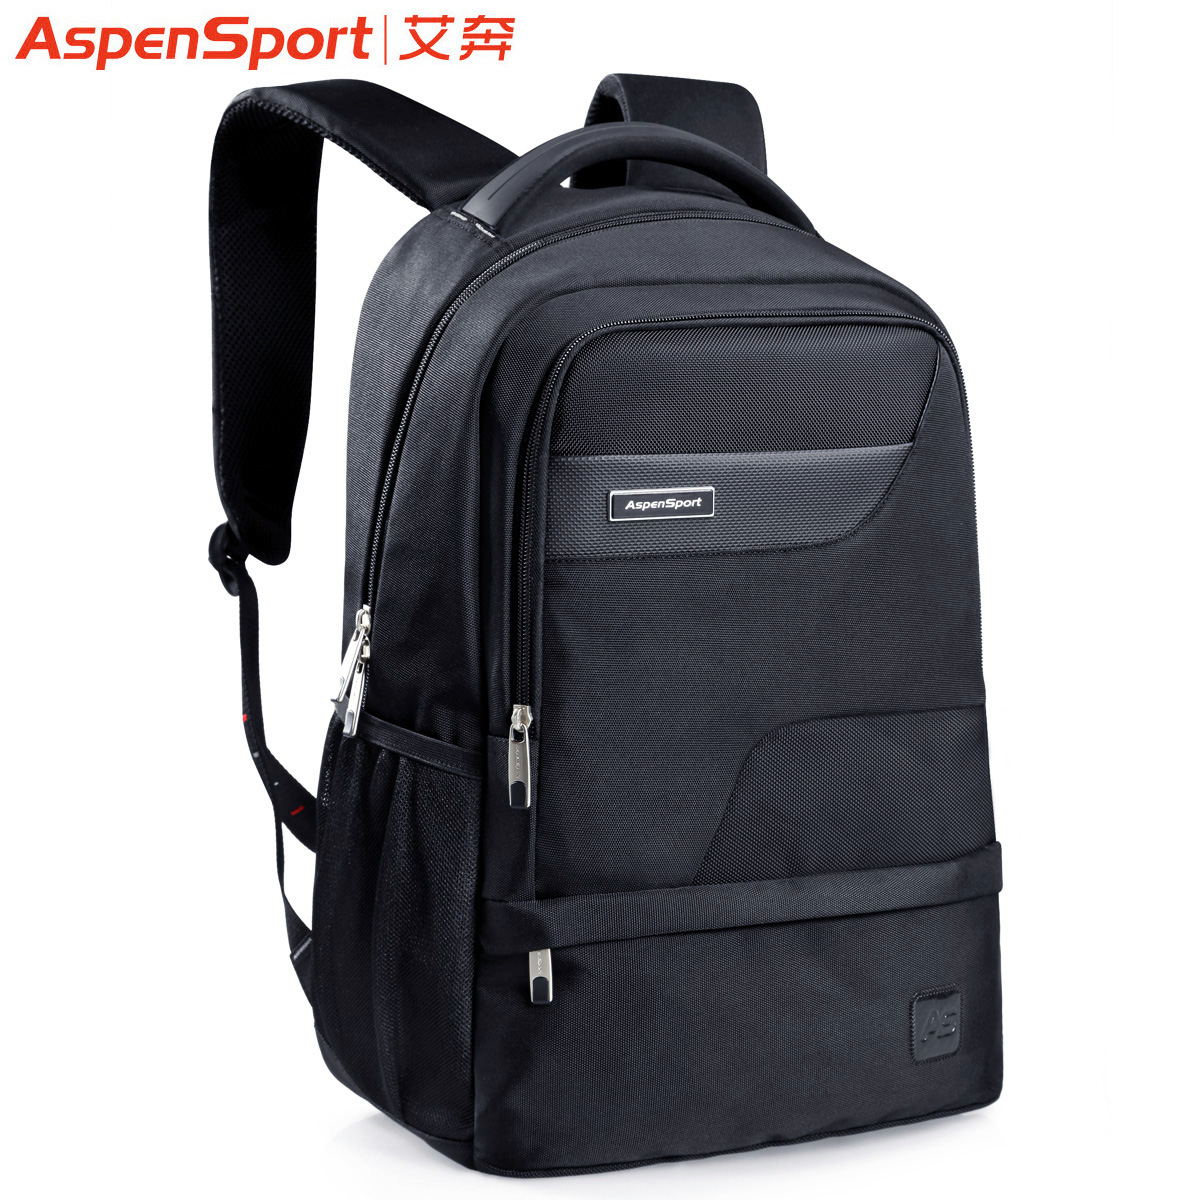 Bags for high school students - 2015 New Style Male Backpack Female Travel Bag Laptop Bag Double Shoulder High School Students